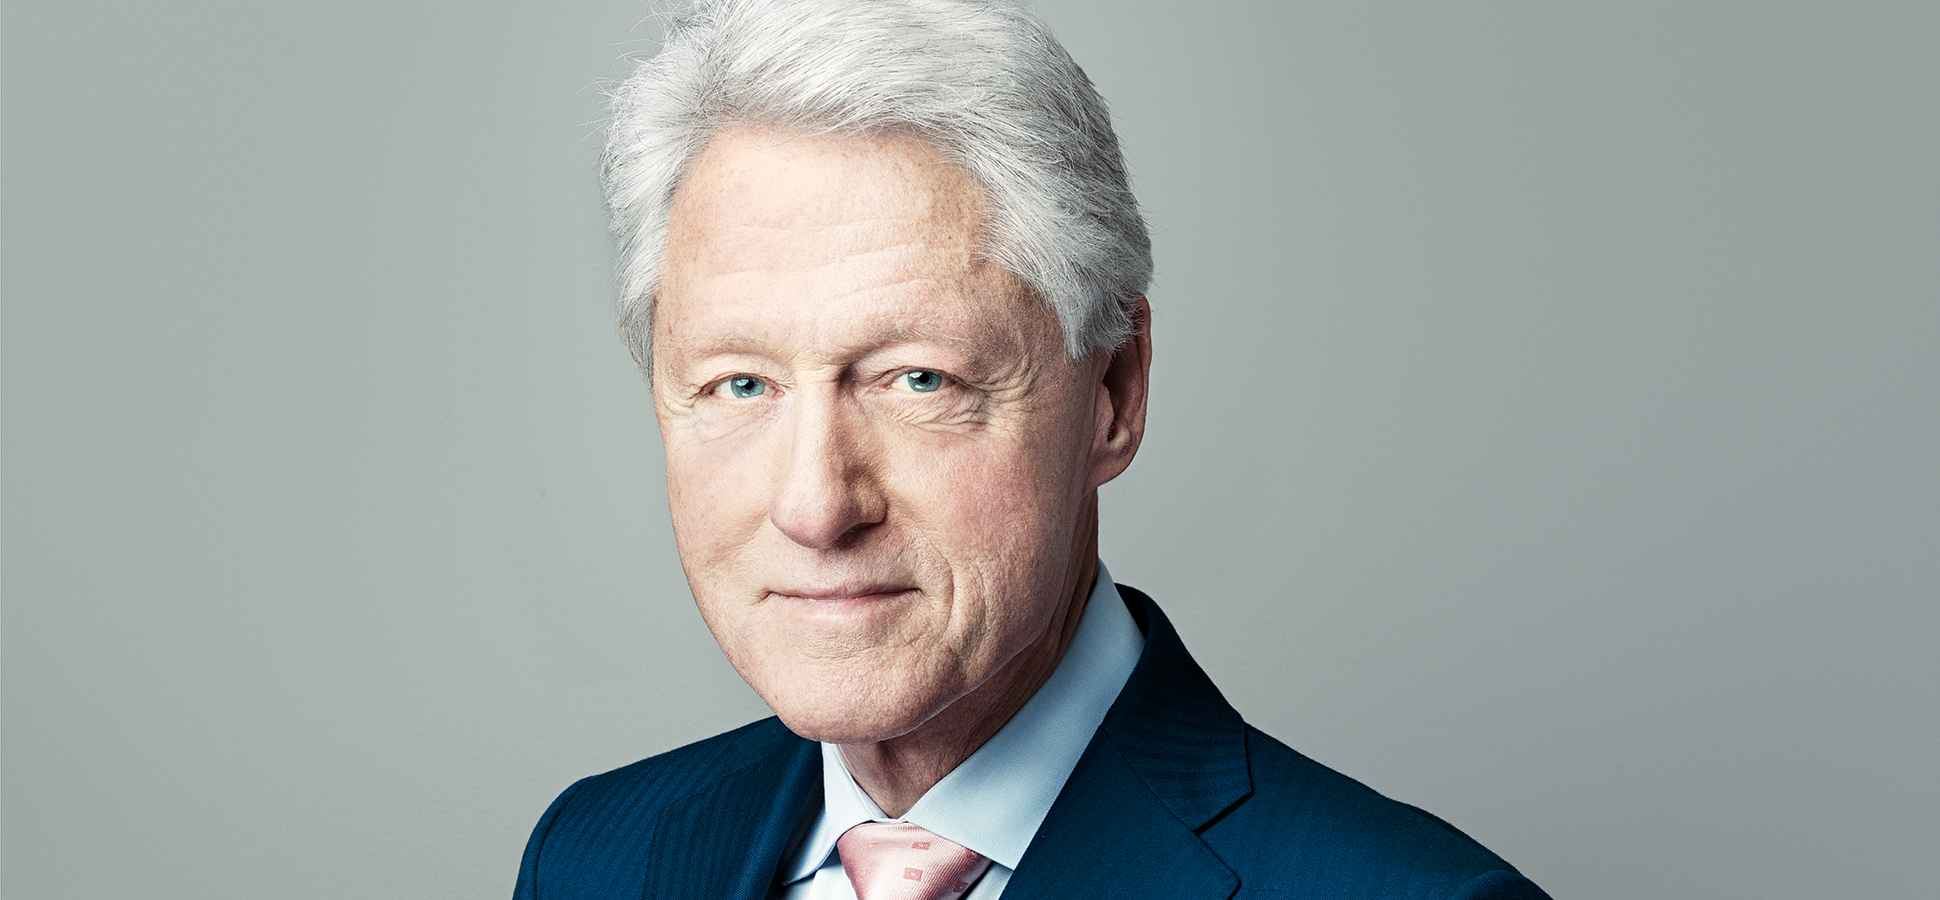 Резултат с изображение за bill clinton